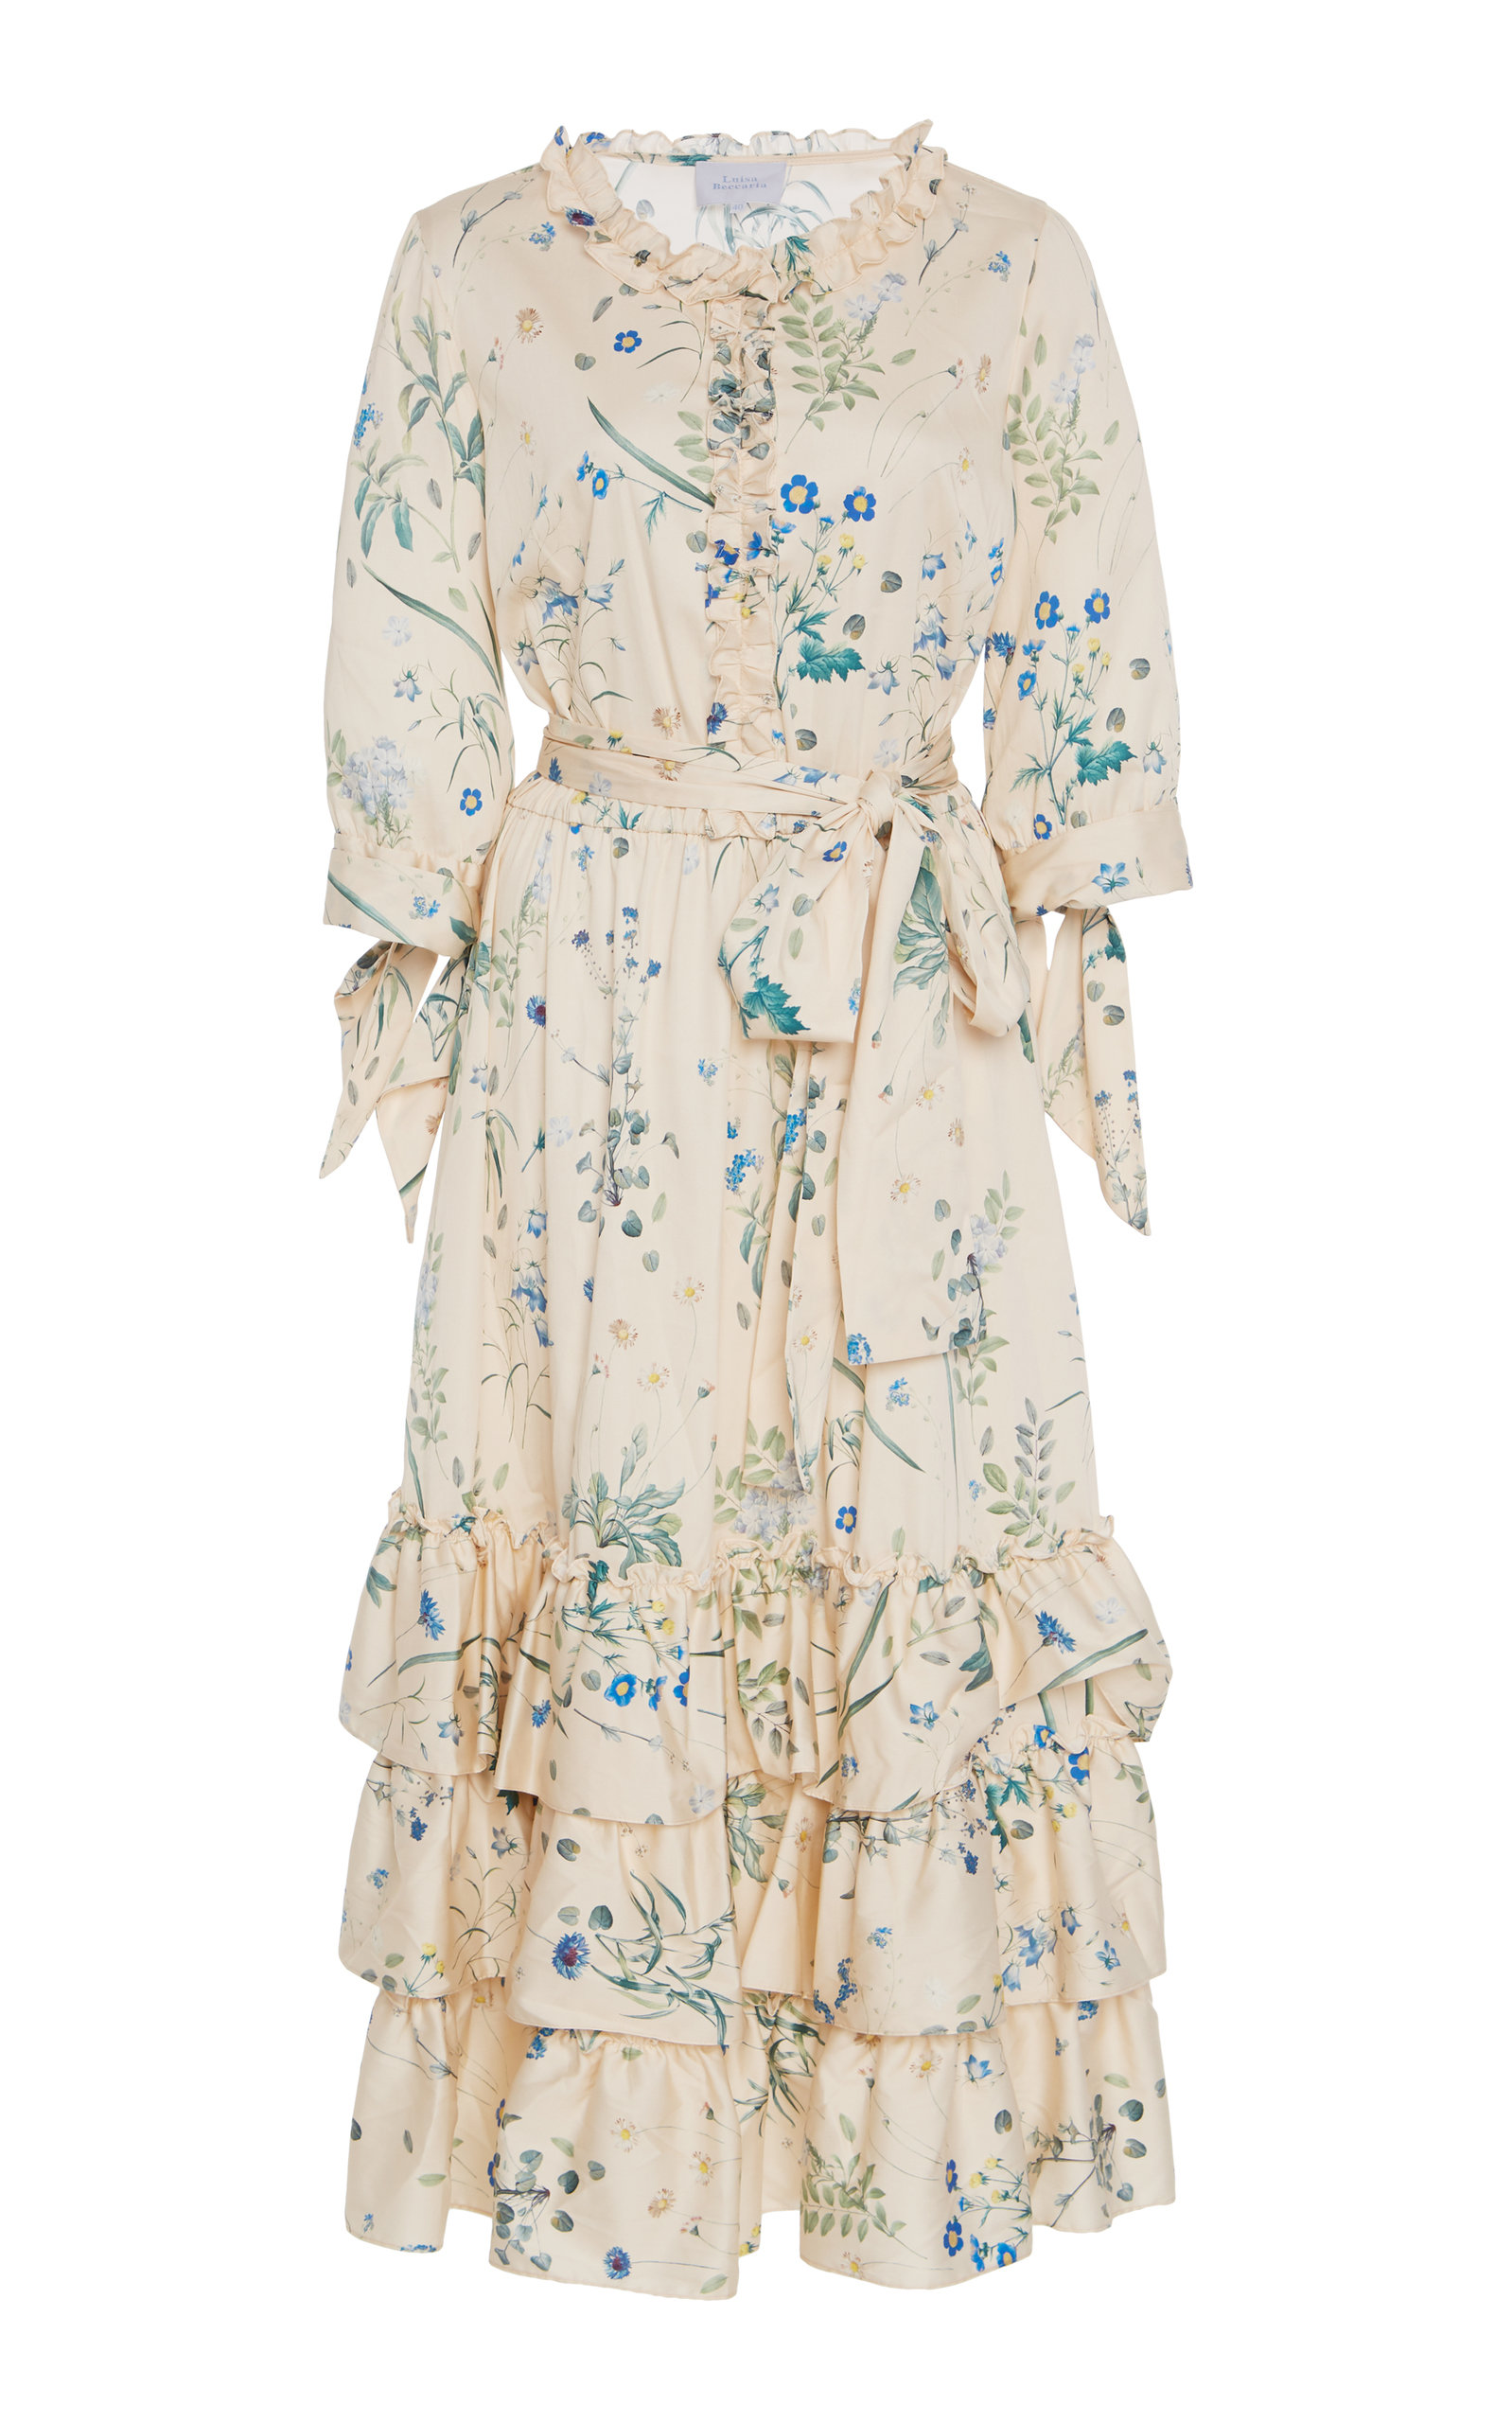 Buy Luisa Beccaria Ruffled Floral-Print Cotton-Blend Midi Dress online, shop Luisa Beccaria at the best price